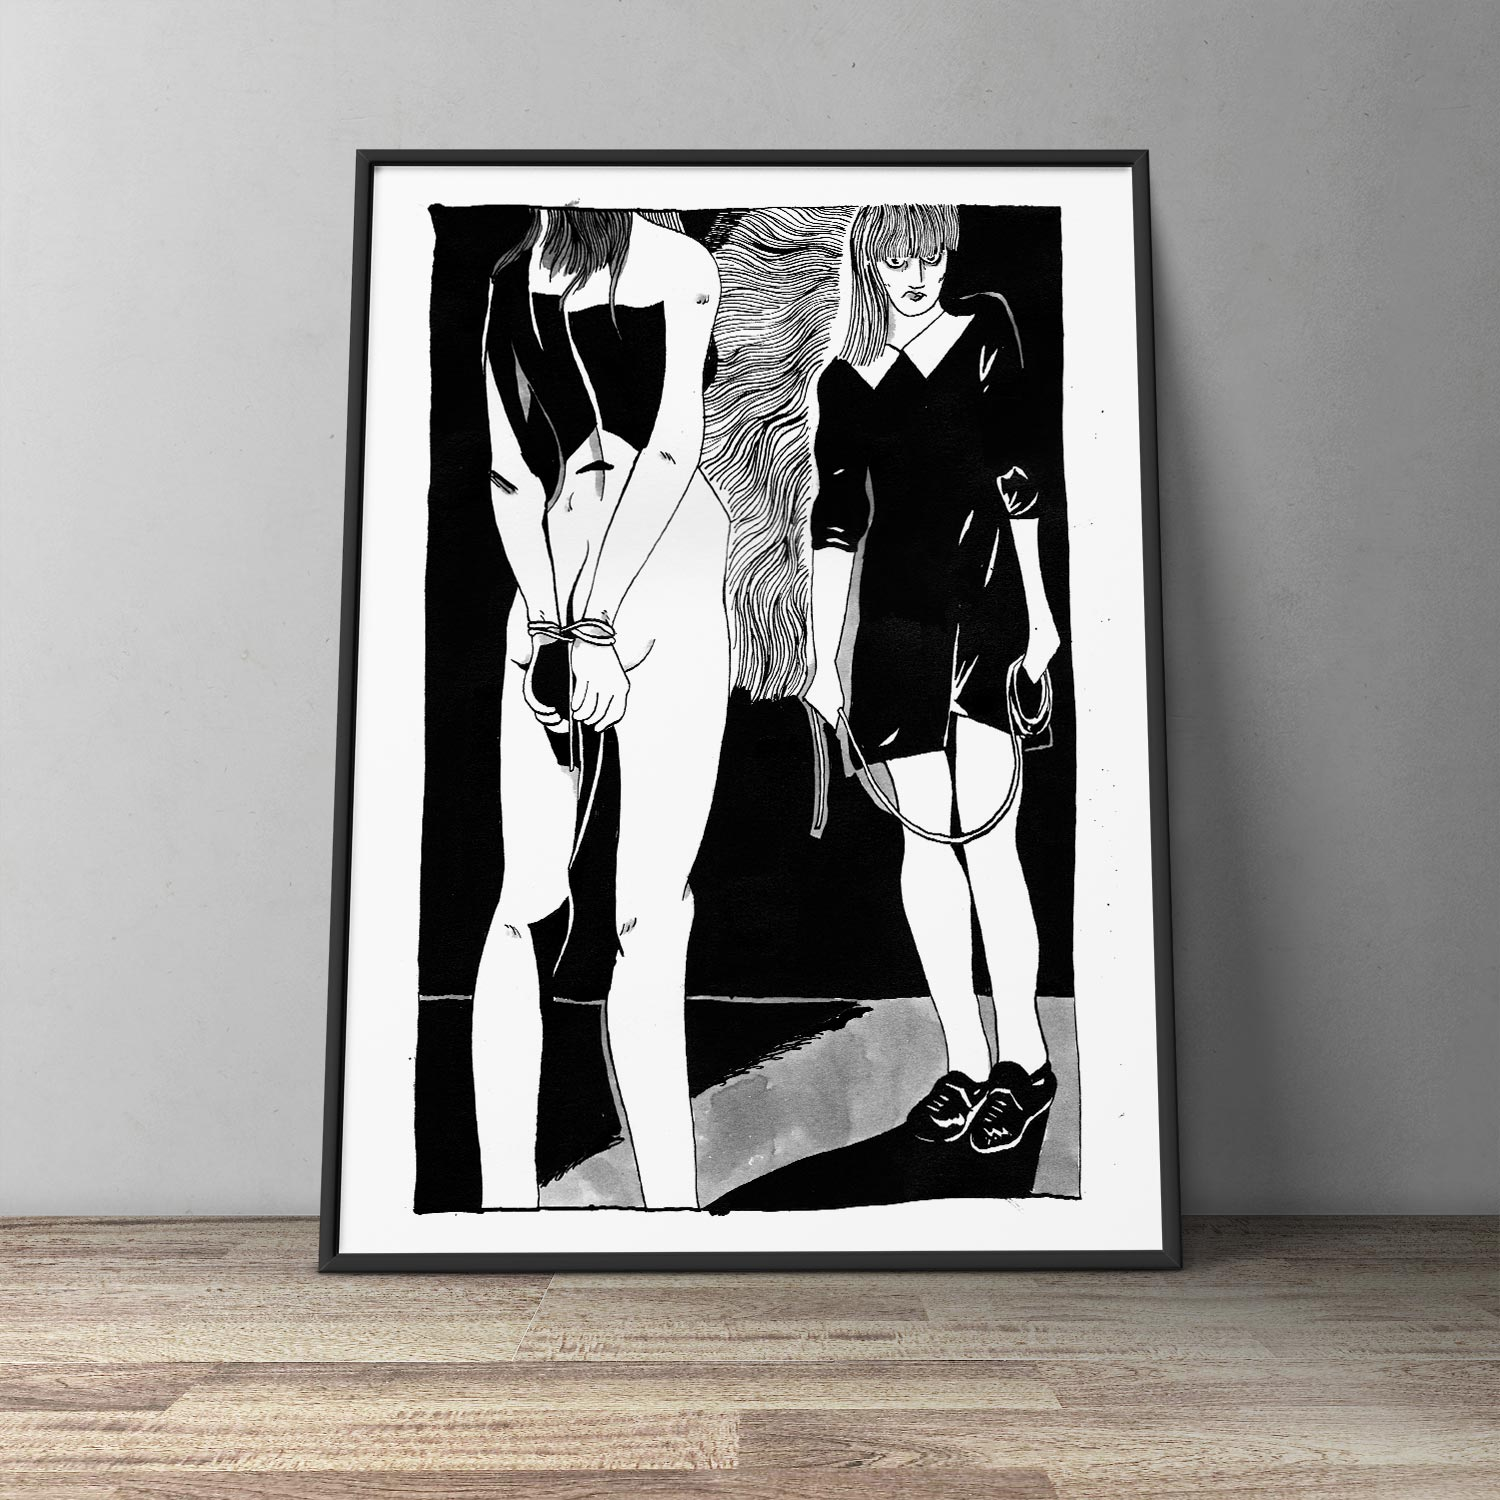 art-prints, gliceé, graphical, illustrative, monochrome, portraiture, bodies, cartoons, sexuality, black, white, ink, paper, black-and-white, contemporary-art, danish, decorative, design, erotic, interior, interior-design, modern, modern-art, nordic, scandinavien, sexual, sketch, Buy original high quality art. Paintings, drawings, limited edition prints & posters by talented artists.